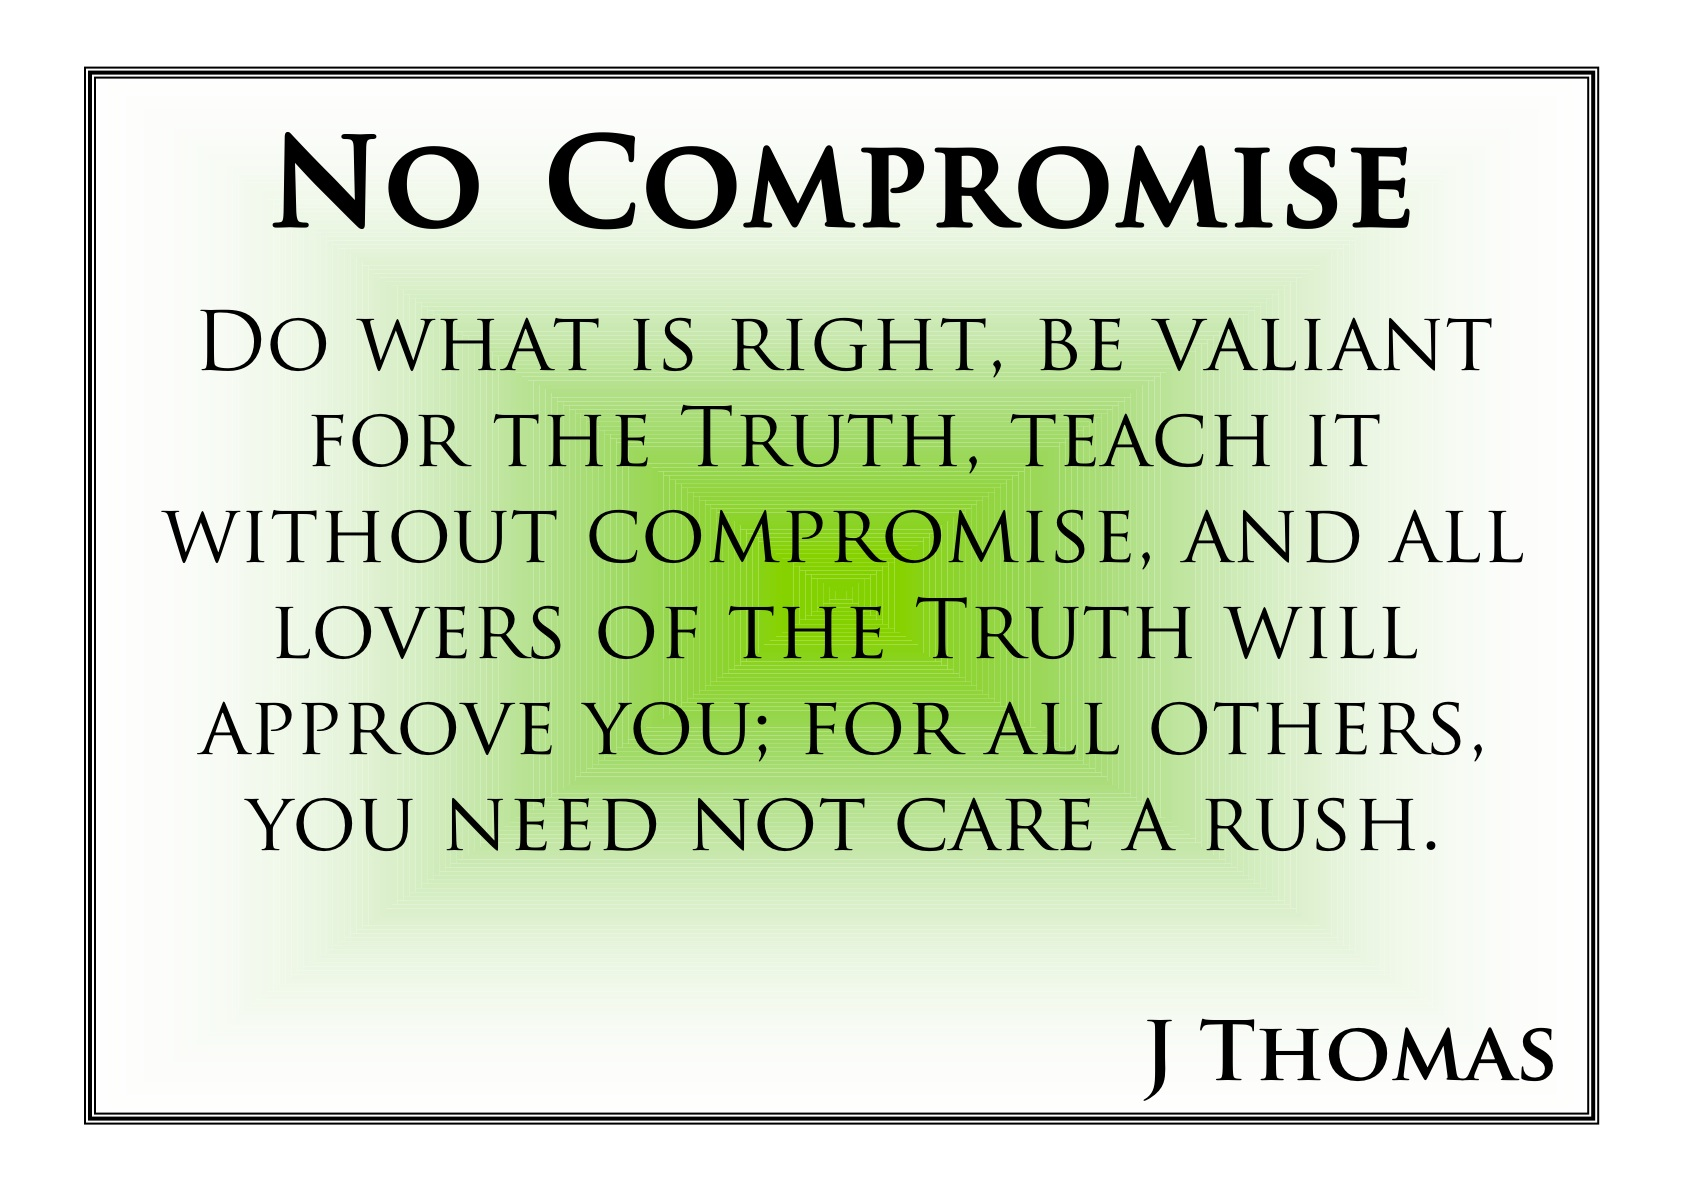 Compromise quotes quote compromising compromised meaning